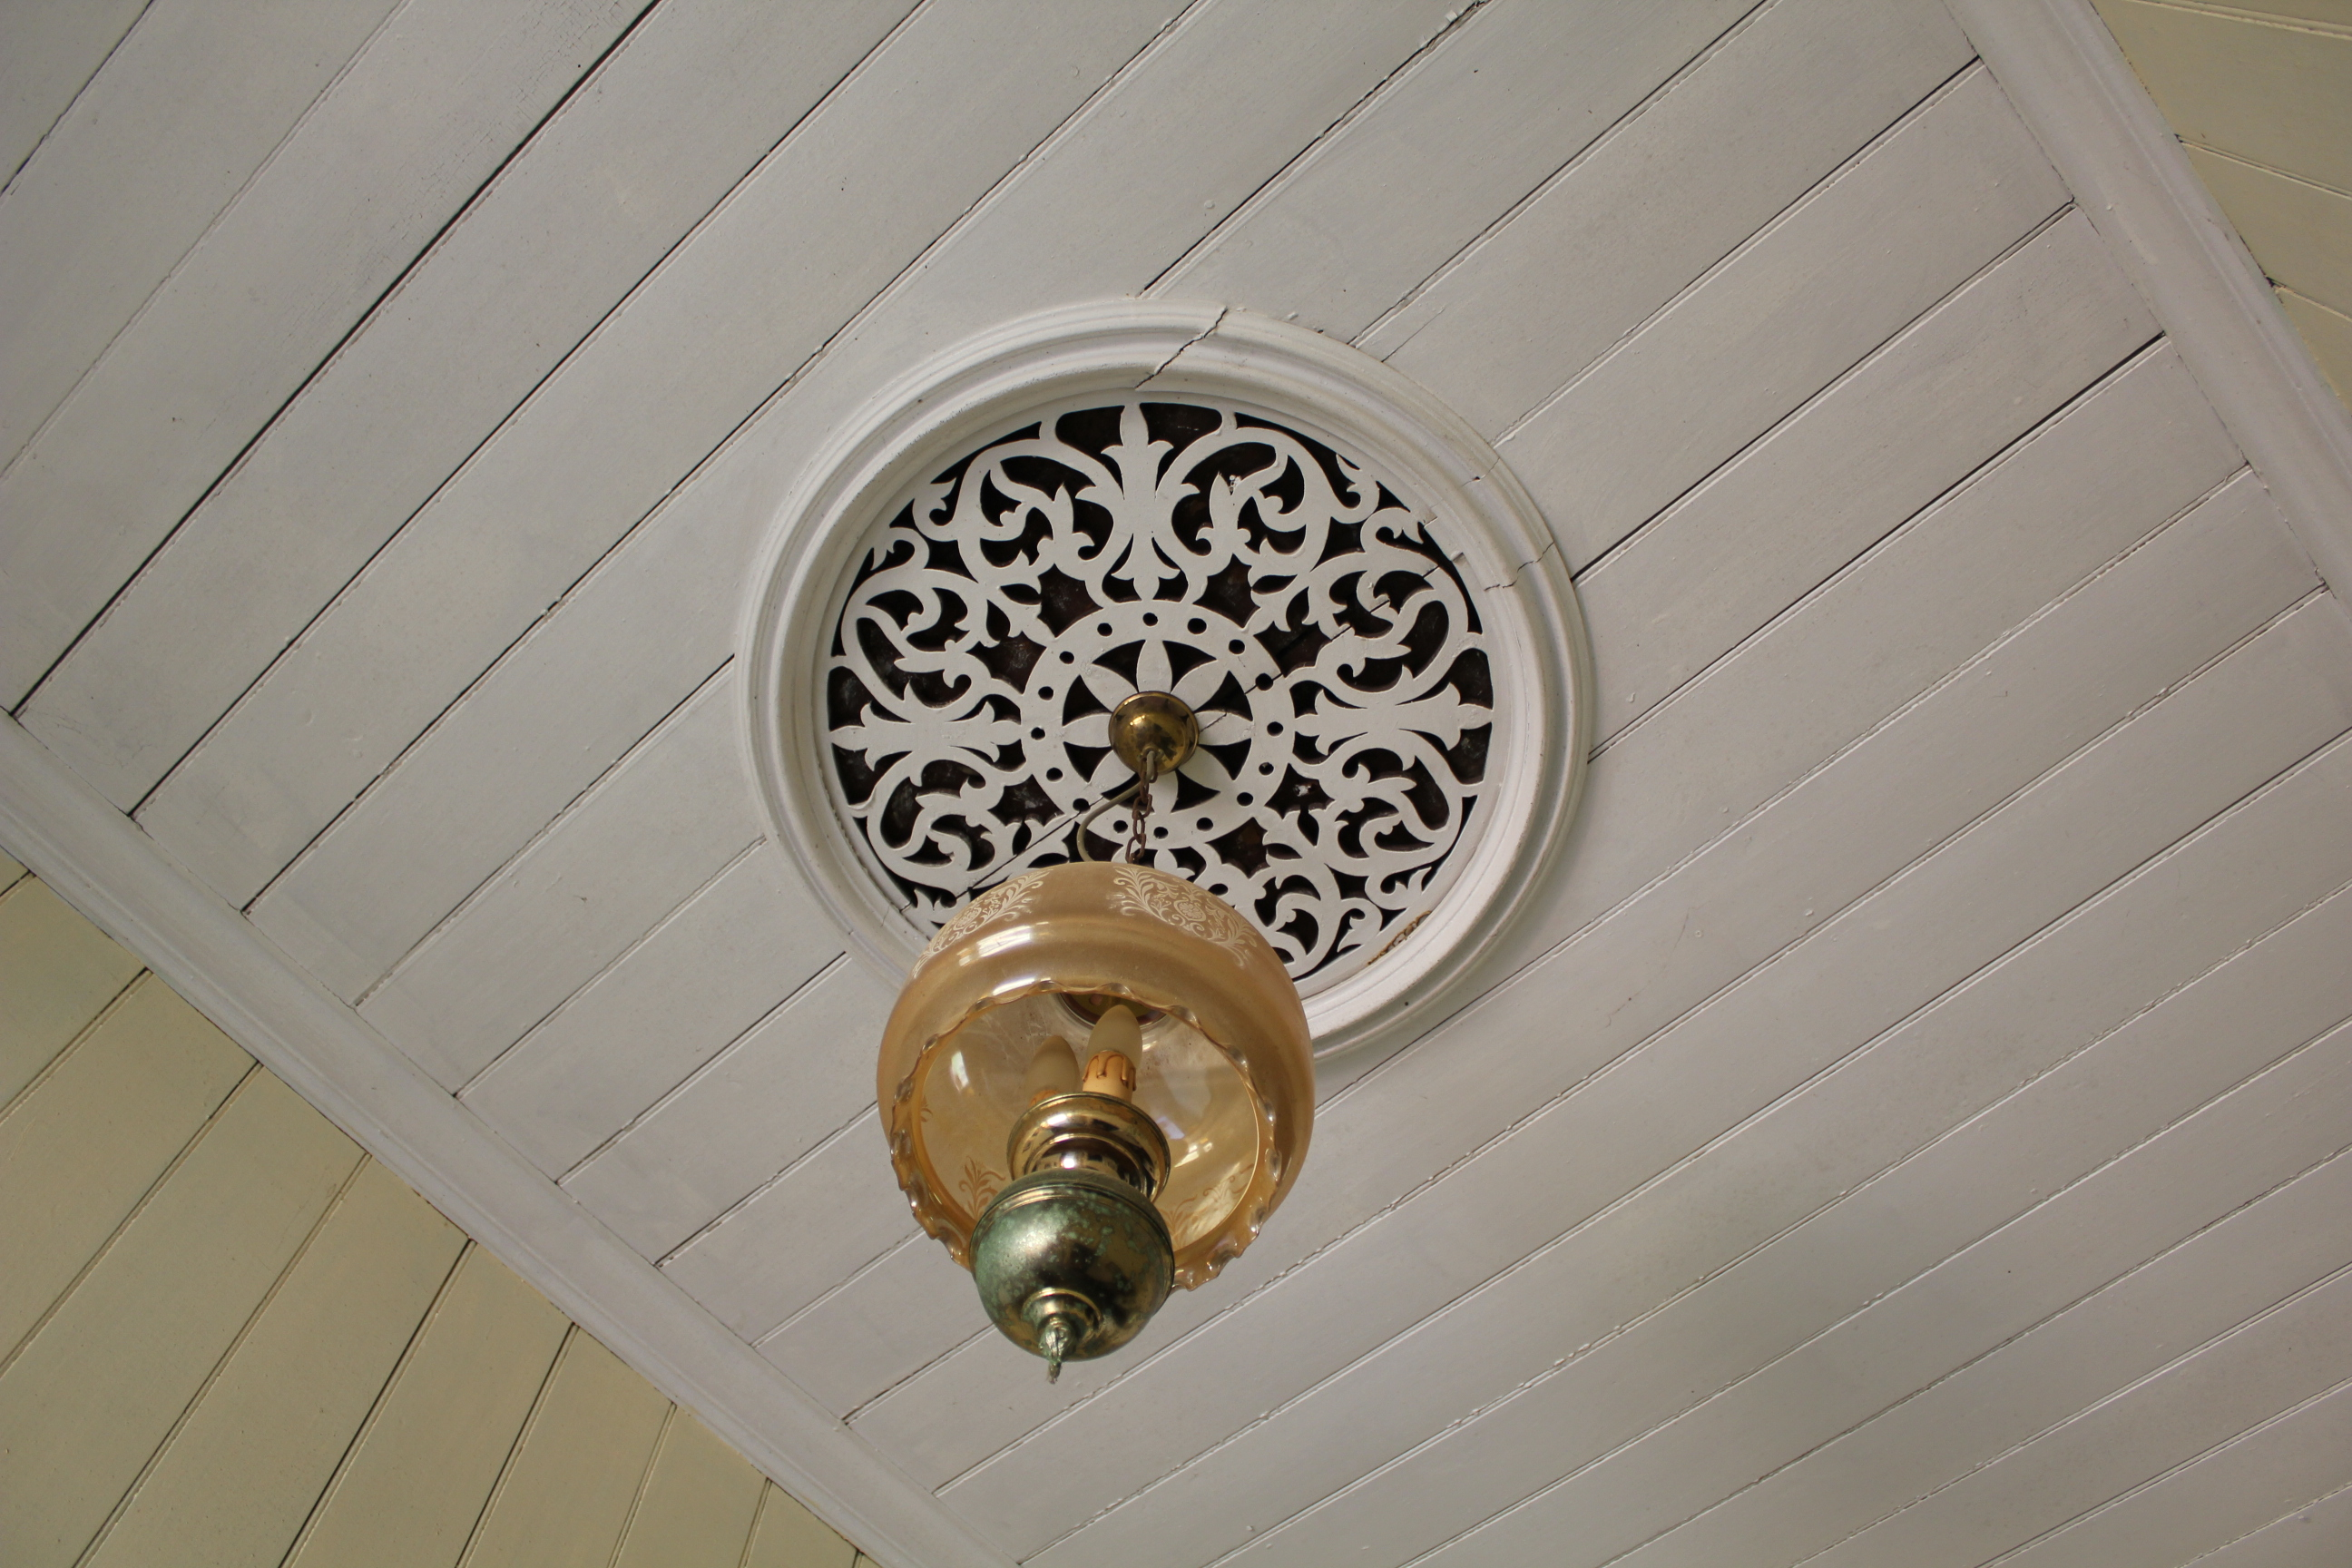 Ceiling Rose Muuto E Canopy Kit Communal Chandelier Pendant Switched Socket Outlet 10 Amp 240 Volt Electrotraders Online Fileceiling House